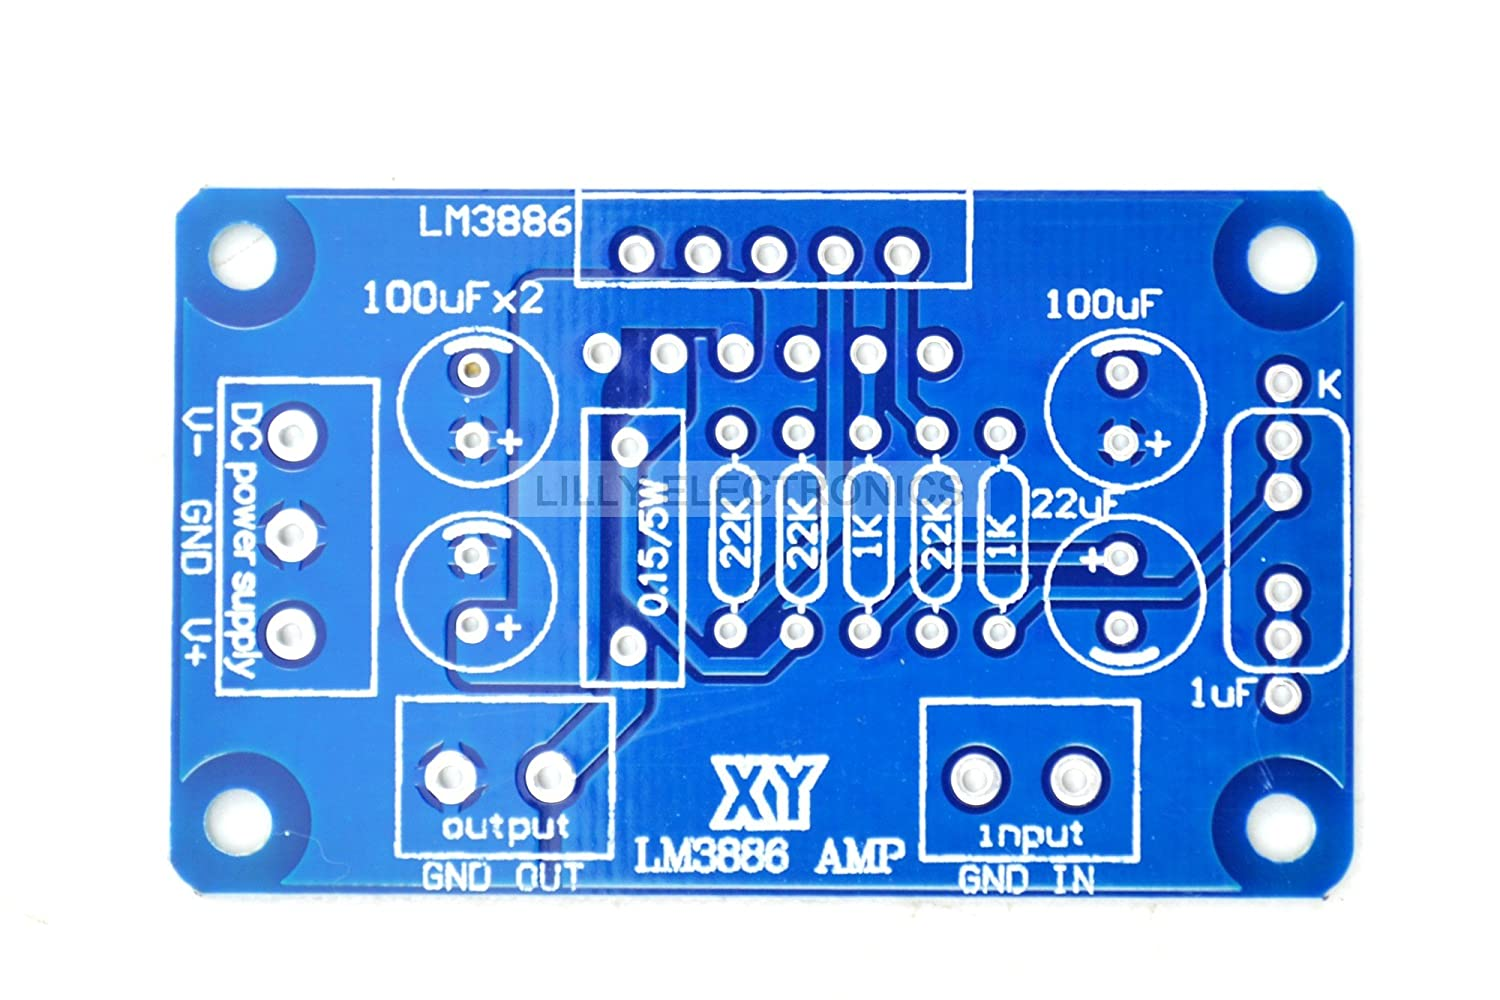 Q Baihe Lm3886tf Lm3886 Amplifier Amp Ne5532 Diy Kit High Performance Audio Power Components 1channel 60w Computers Accessories